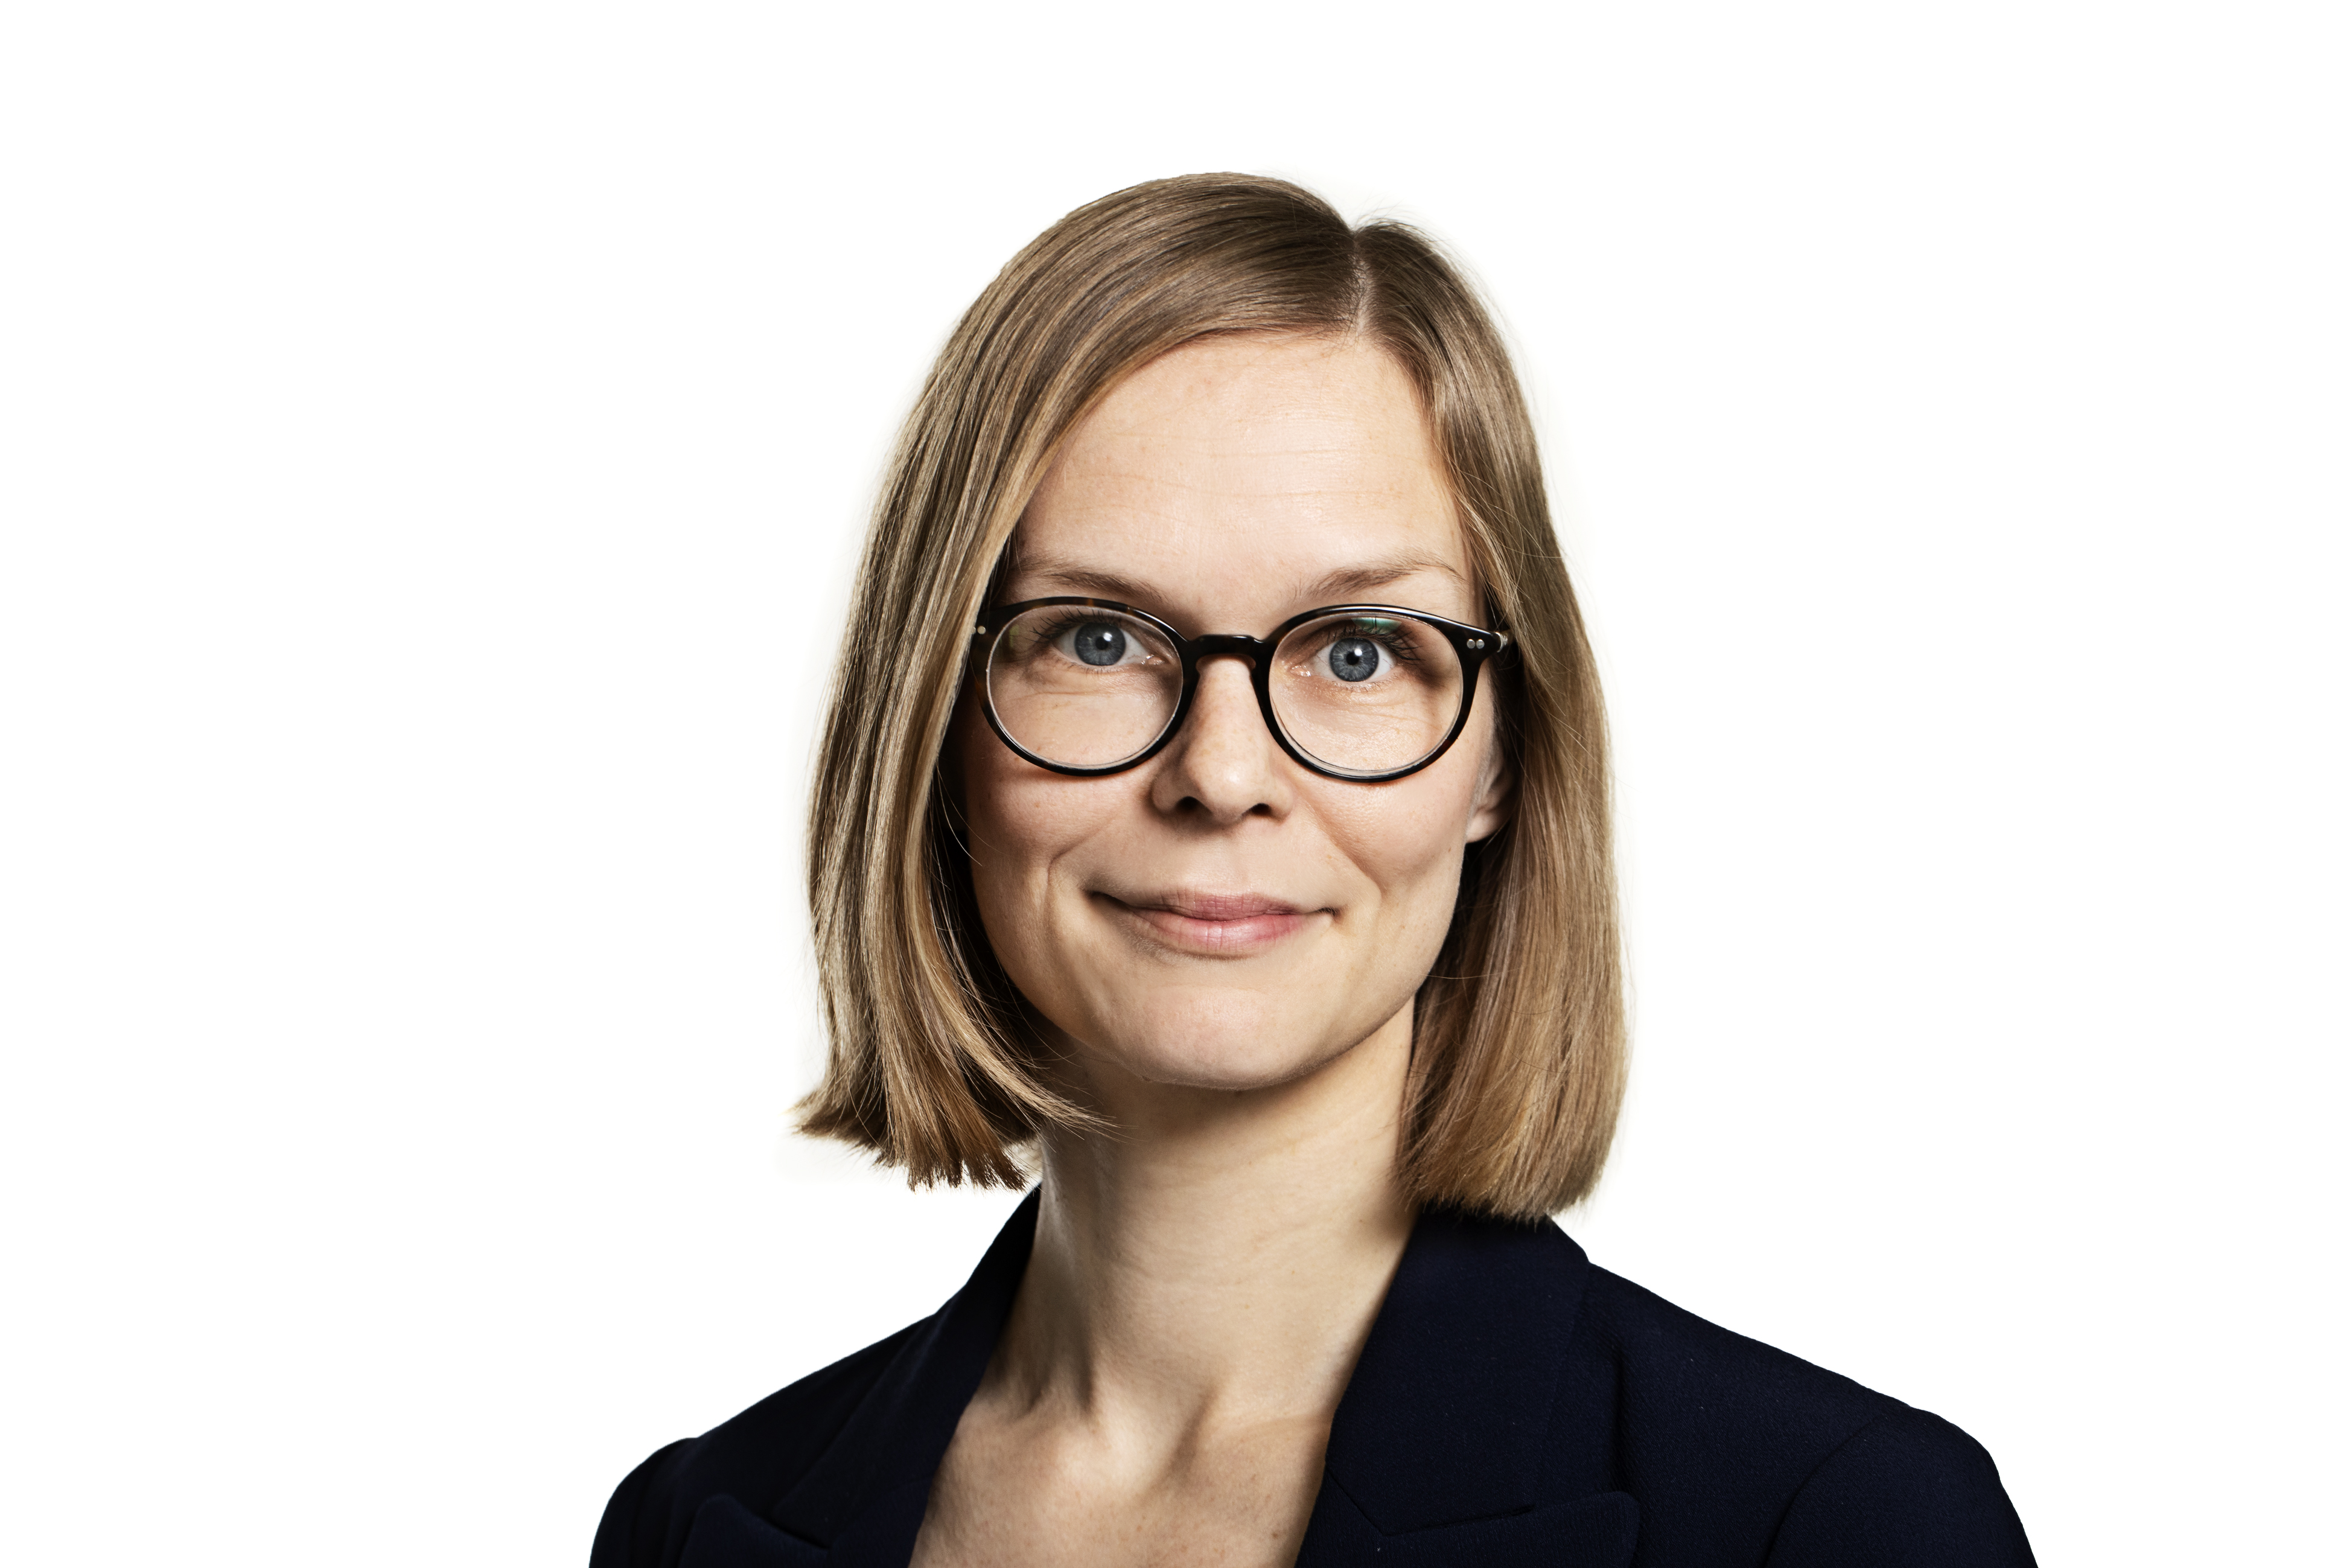 Photo of Lena Brogaard